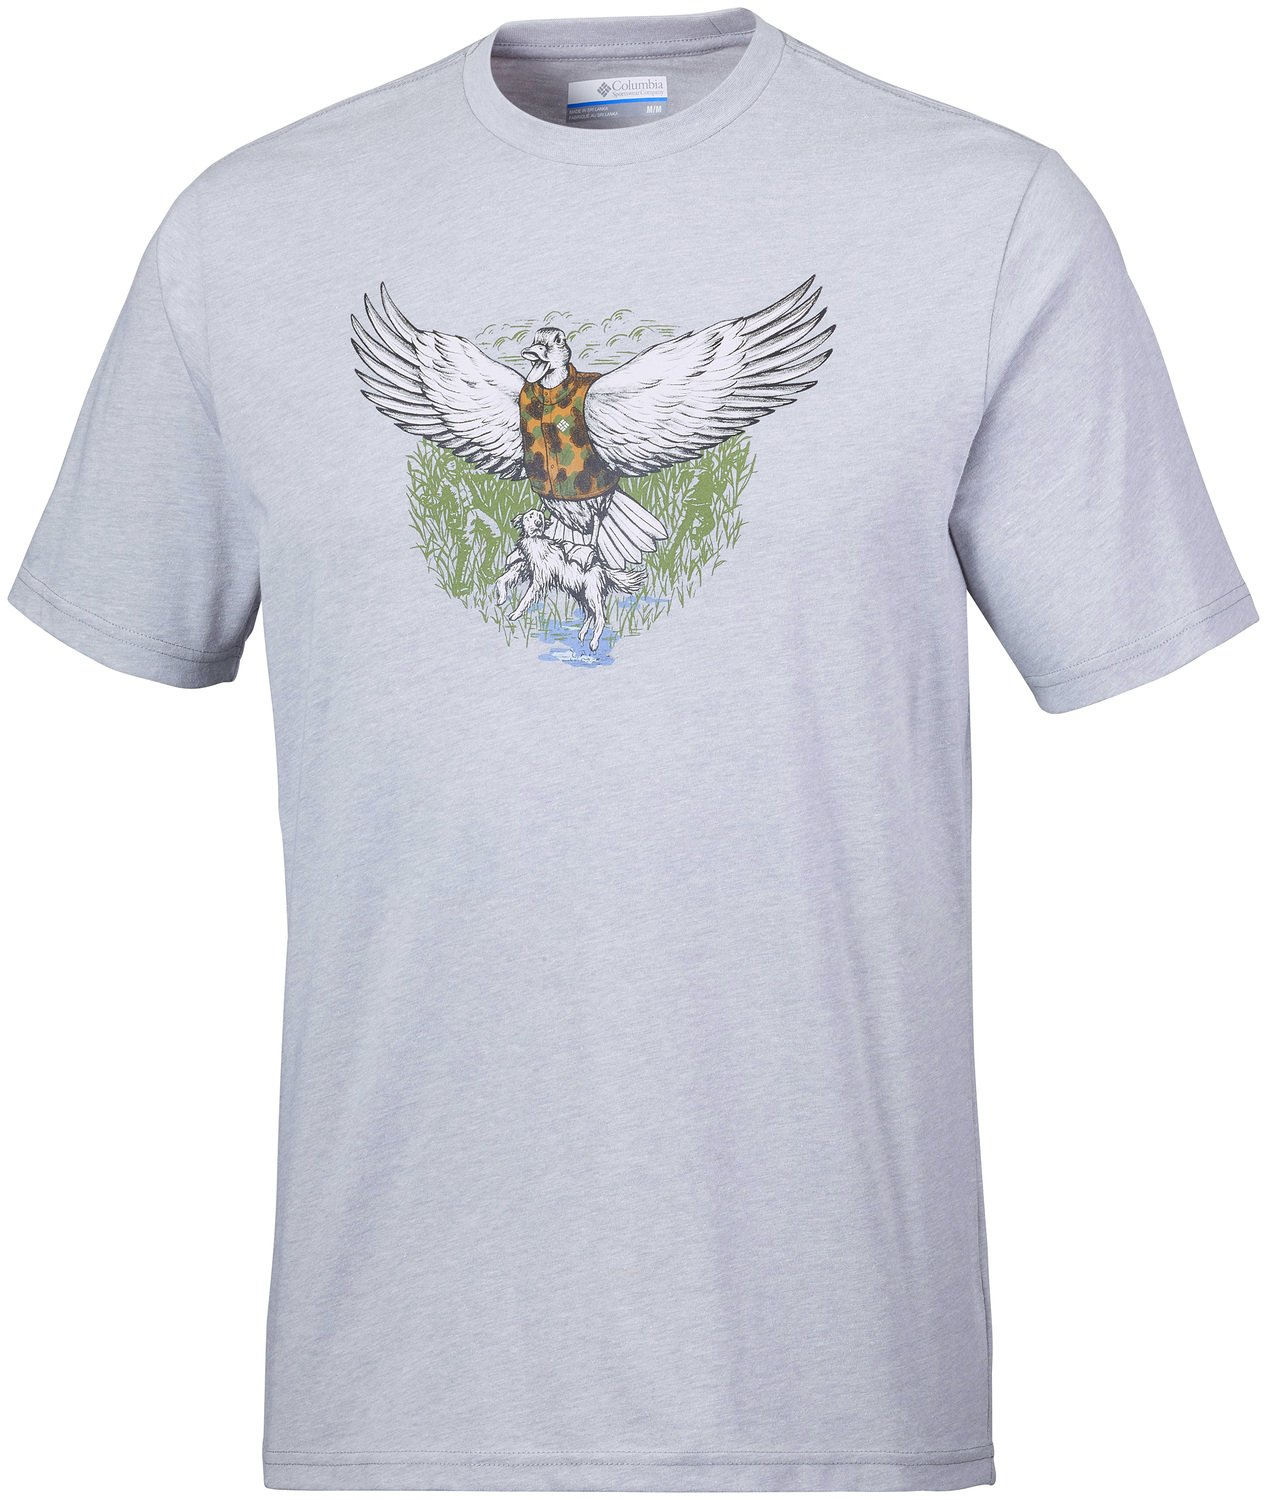 Columbia The Duck Strikes Back™ Grey Heather Xl